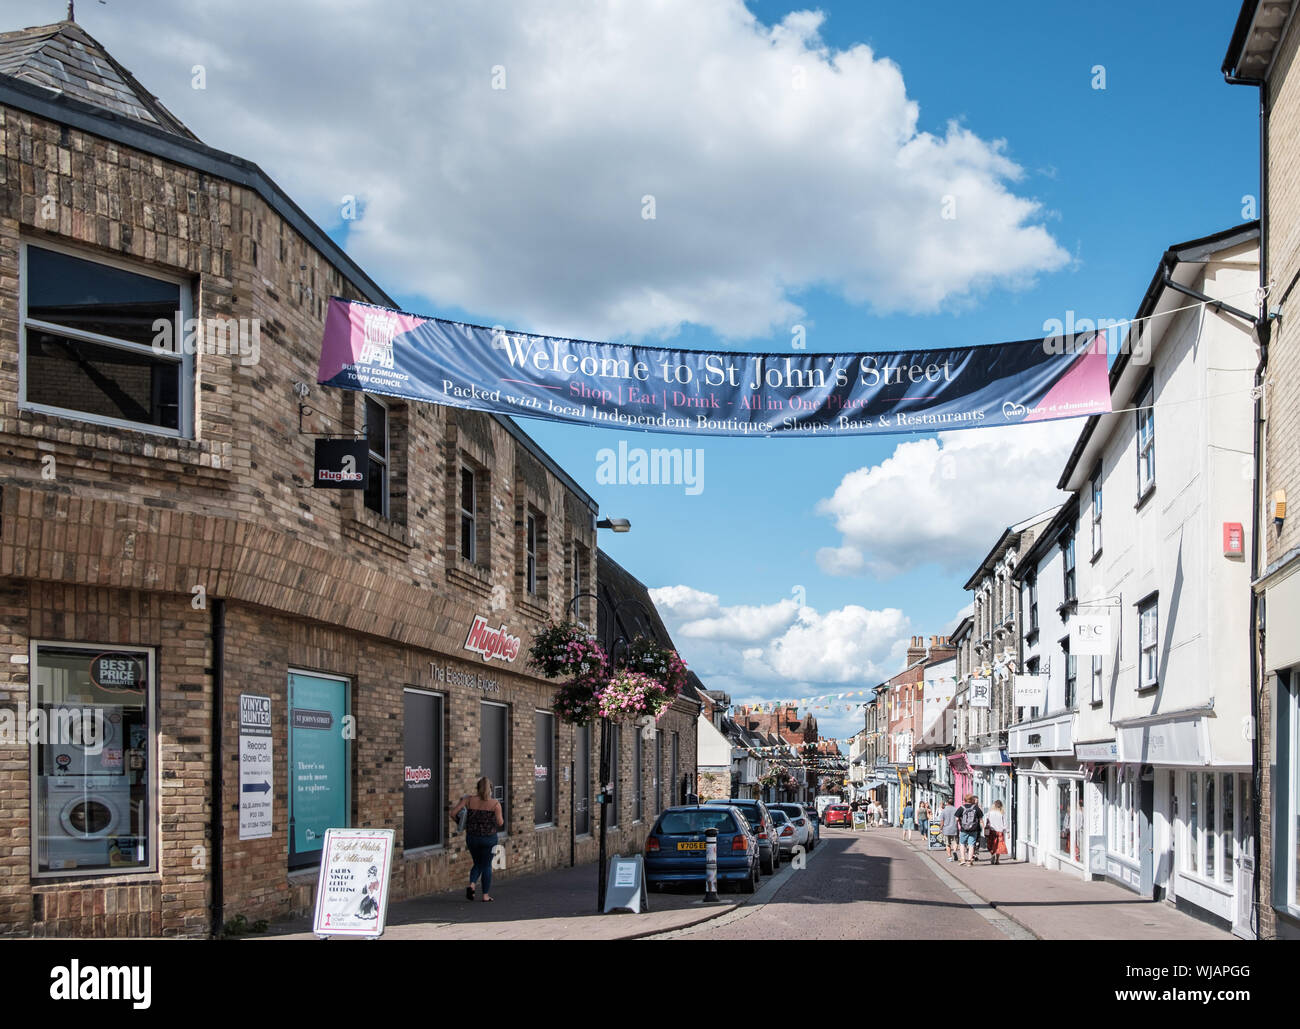 A banner welcomes shoppers to St John's Street, known for independent shops, boutiques and restaurants, Bury St Edmunds, Suffolk Stock Photo